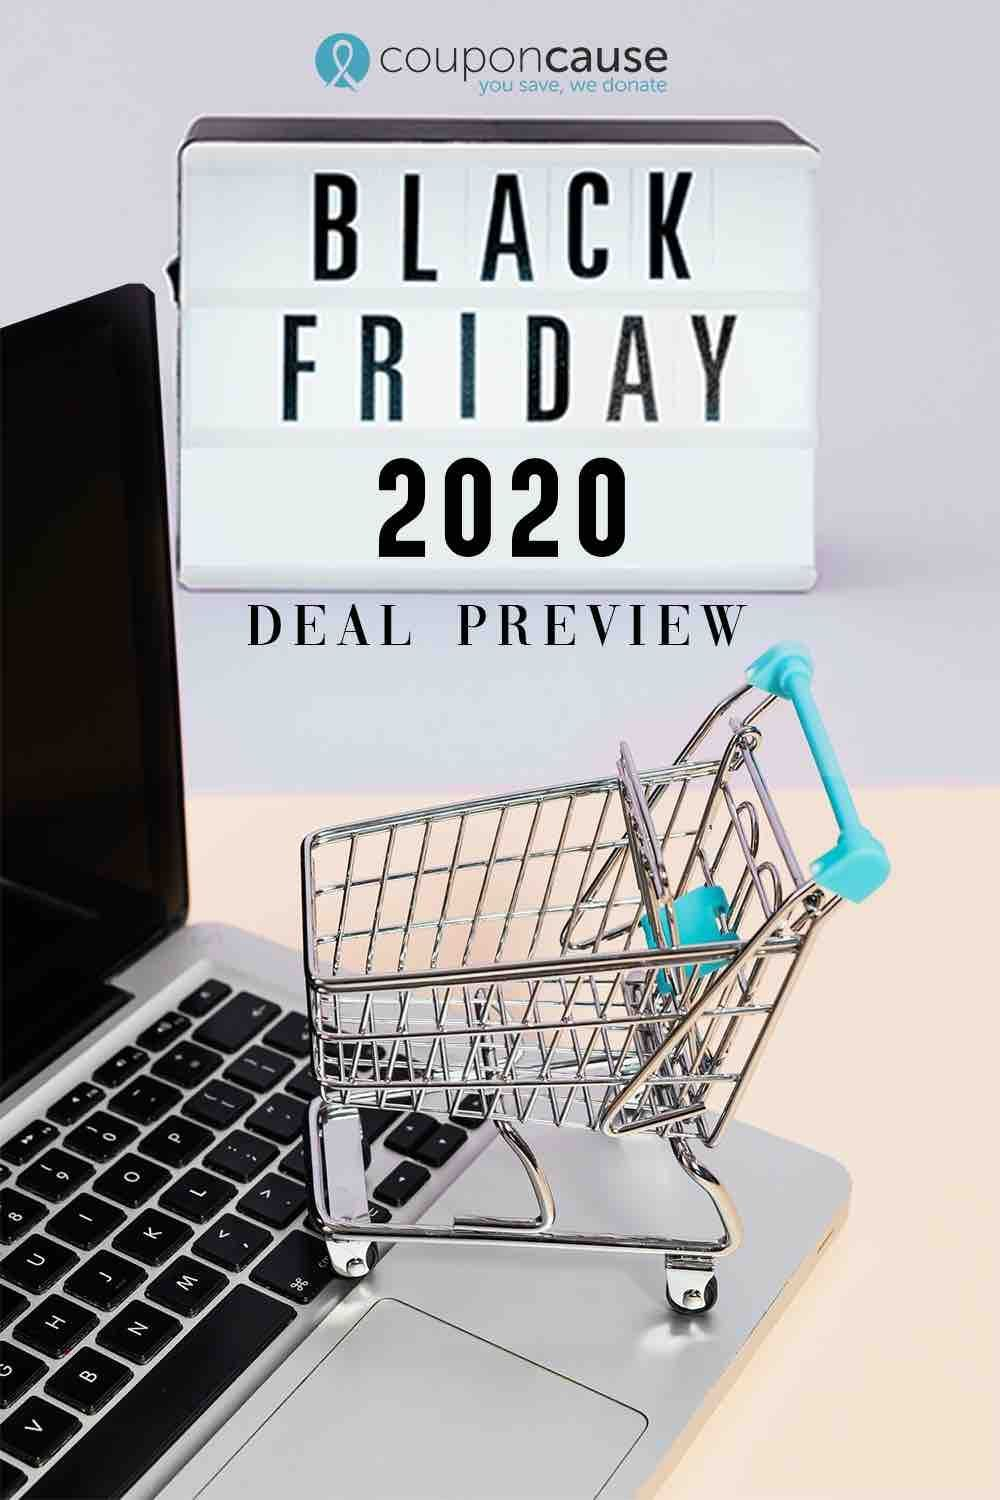 Black Friday 2020 Deal Preview Couponcause Com Best Buy Coupons Black Friday Home Depot Coupons